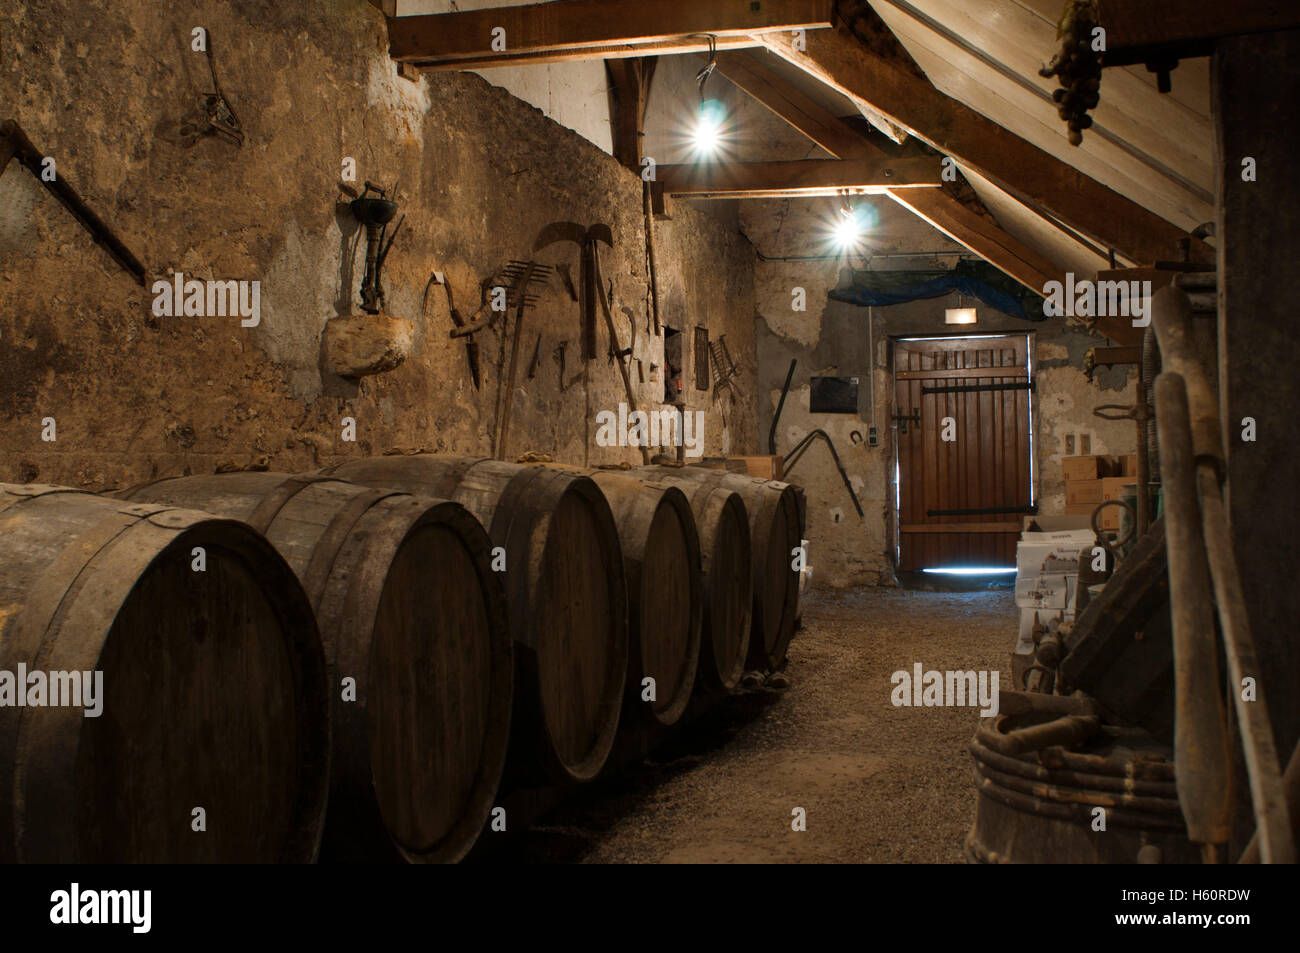 Cellar, jars, old room furnishings of one of the nearby wine growers to Cheverny, Loire Valley, France. - Stock Image